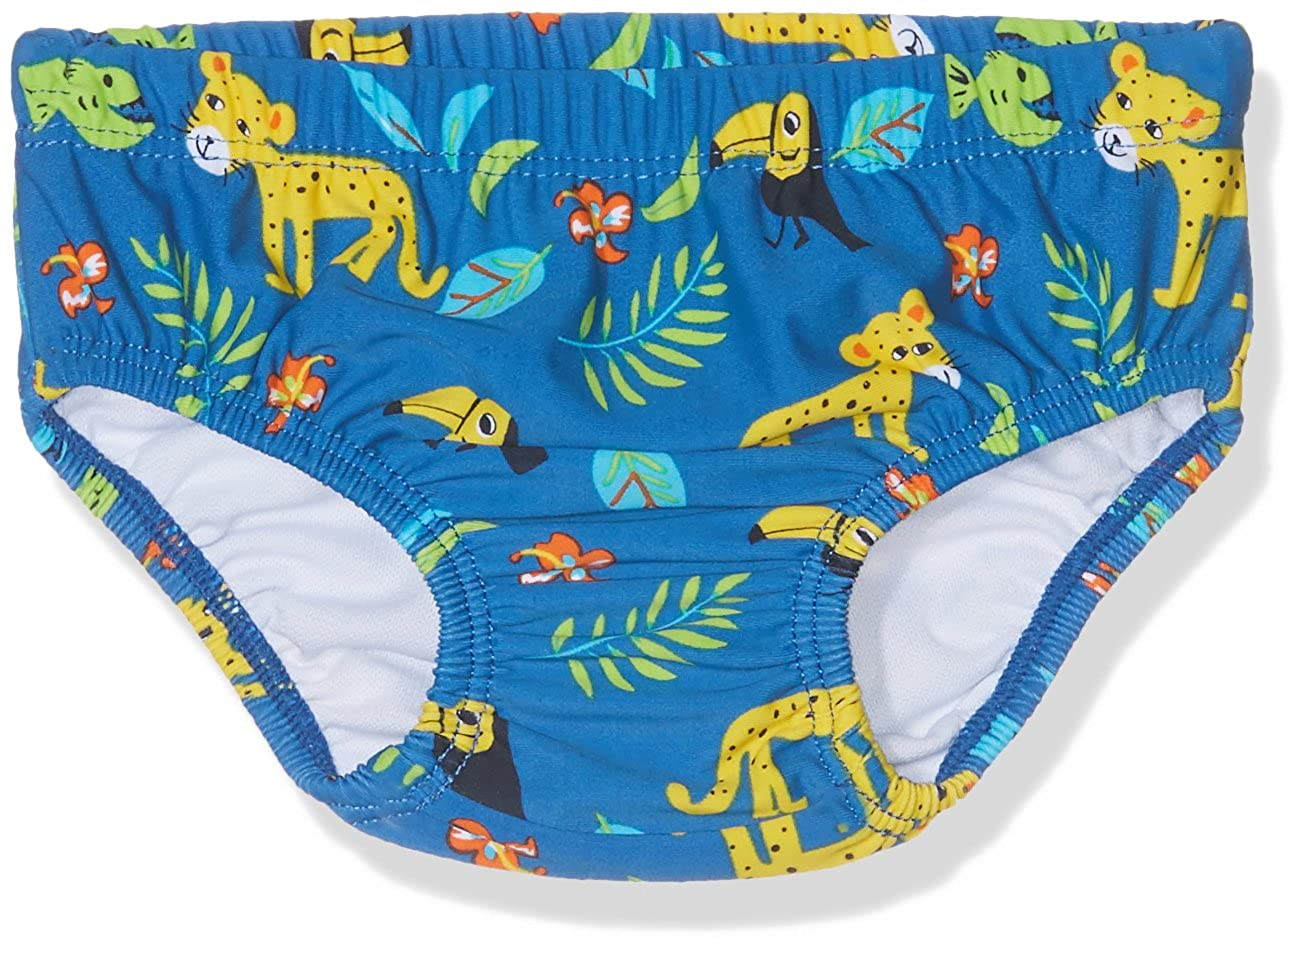 460110 Baby UV Protection Swimwear Nappy Playshoes